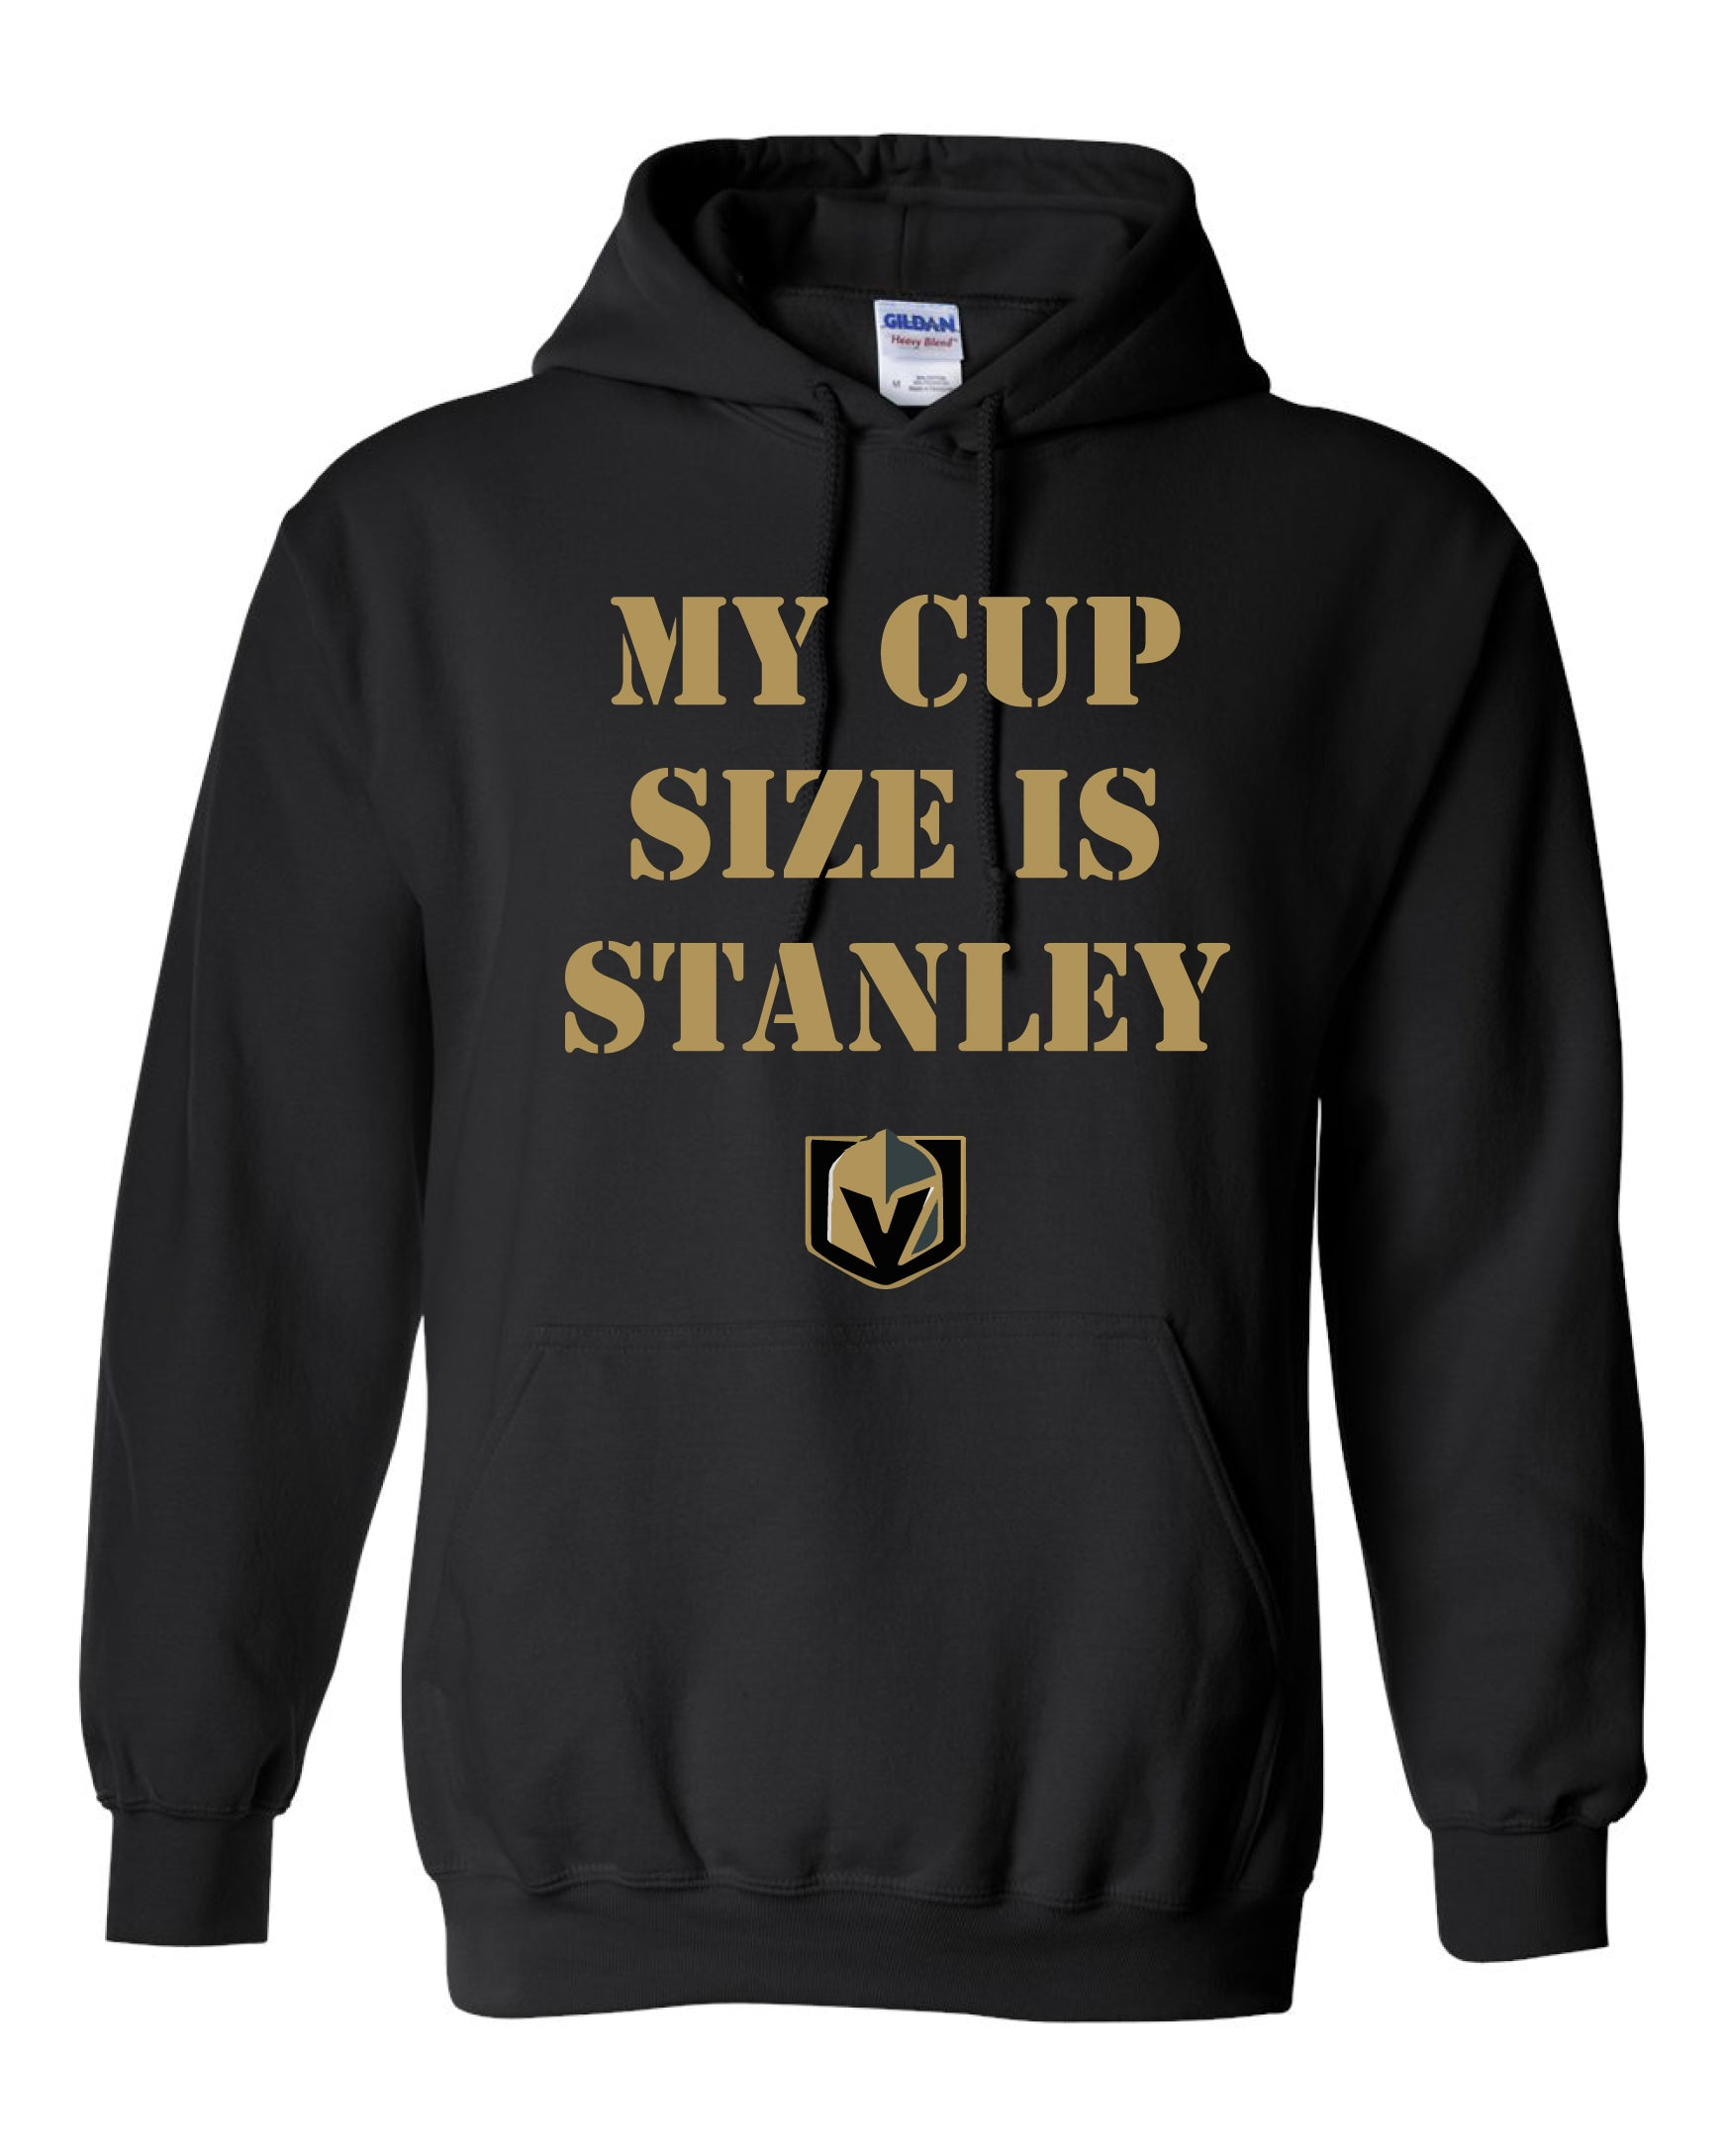 My Cup Size is Stanley - Las Vegas Golden Knights